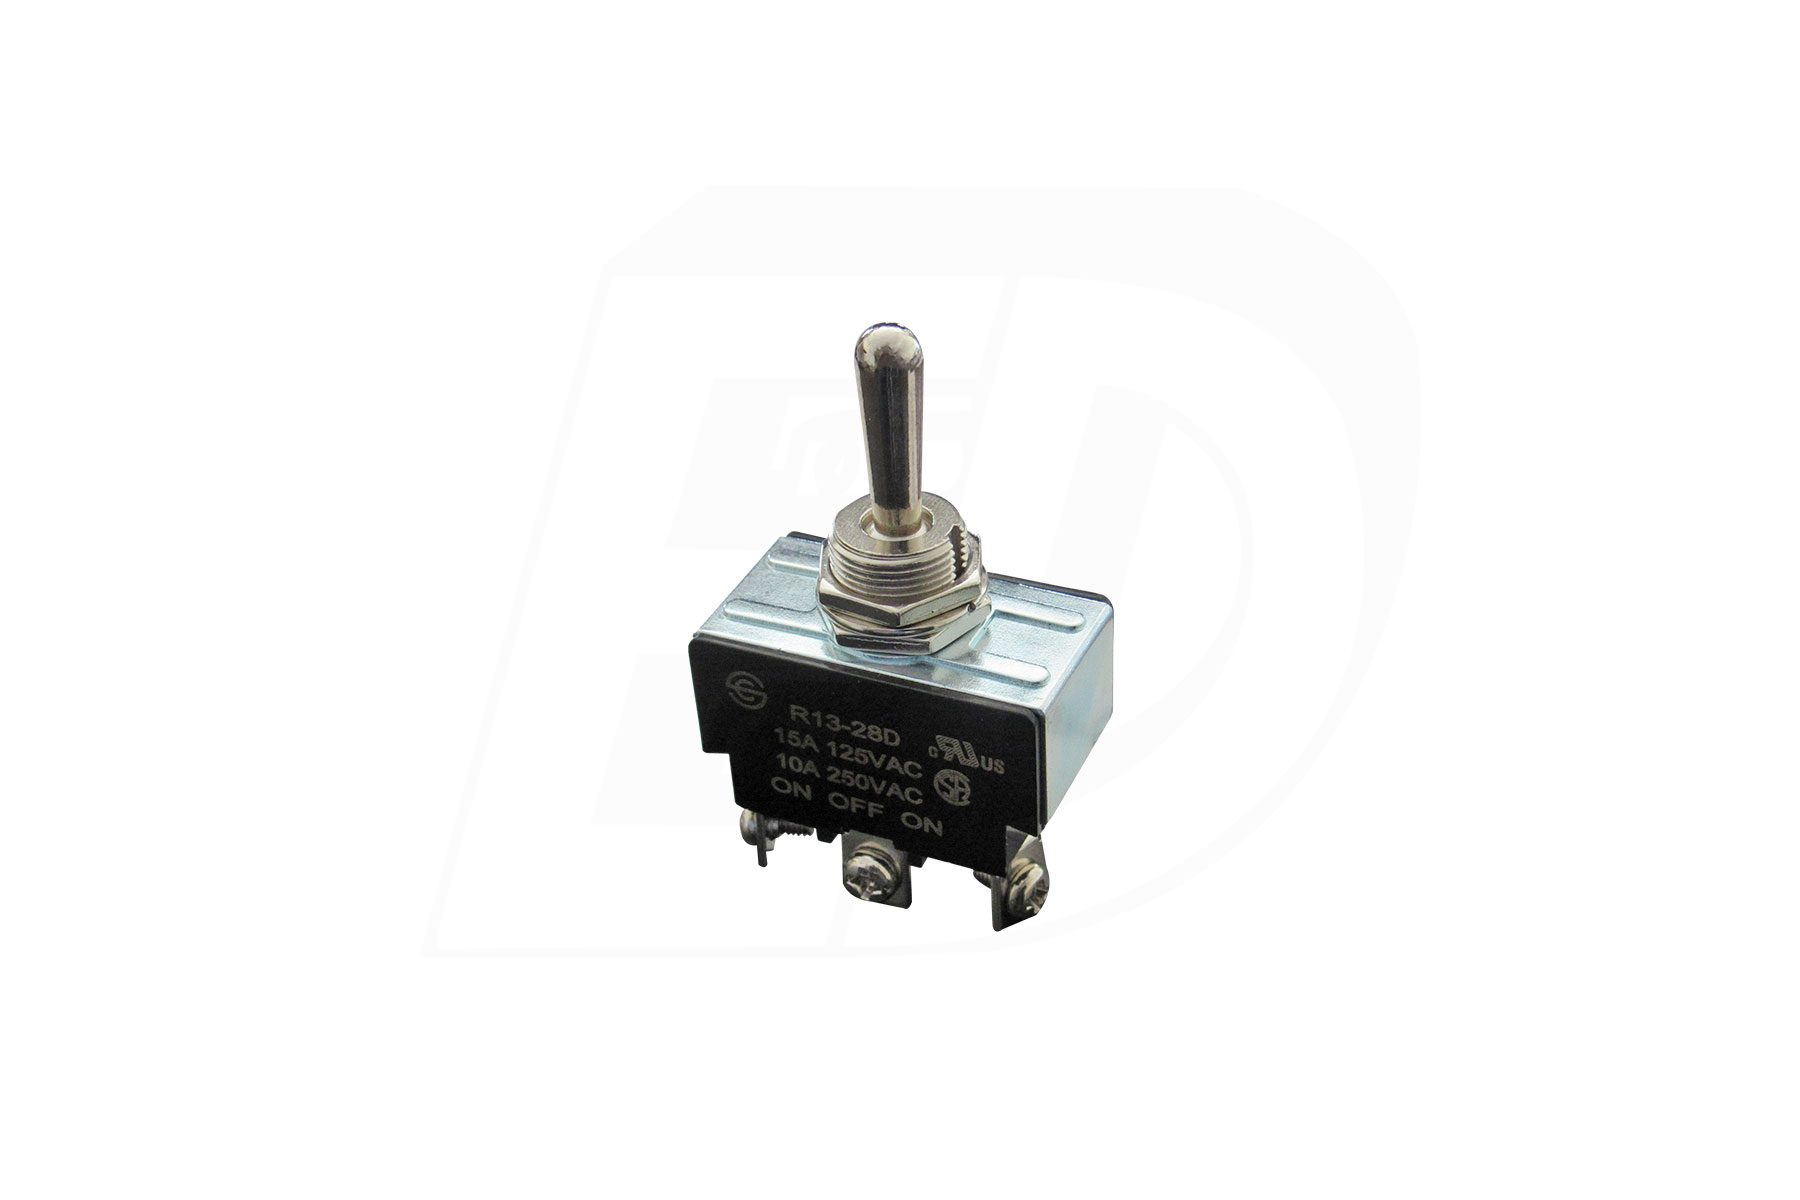 SPDT Toggle Lamp Switch